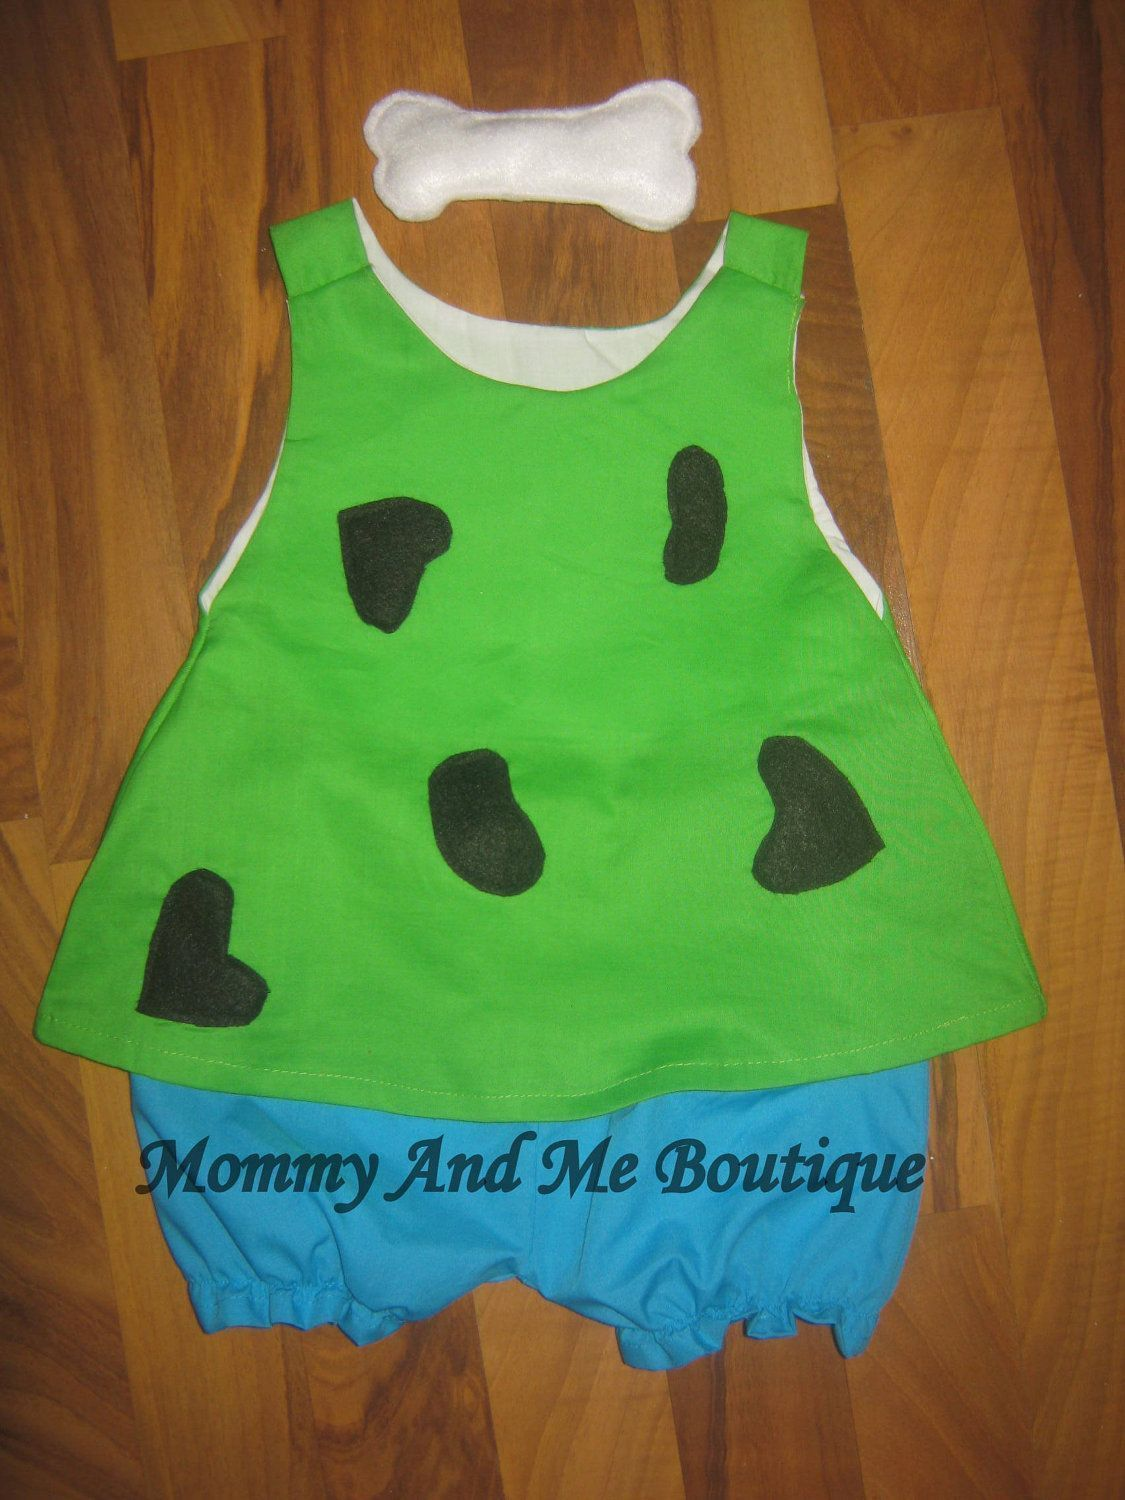 Green And Blue Flintstone Pebbles Costume #pebblesandbambamcostumes Green And Blue Flintstone Pebbles Costume by mommyandmeshop, $32.00 #pebblescostume Green And Blue Flintstone Pebbles Costume #pebblesandbambamcostumes Green And Blue Flintstone Pebbles Costume by mommyandmeshop, $32.00 #pebblesandbambamcostumes Green And Blue Flintstone Pebbles Costume #pebblesandbambamcostumes Green And Blue Flintstone Pebbles Costume by mommyandmeshop, $32.00 #pebblescostume Green And Blue Flintstone Pebbles #pebblescostume